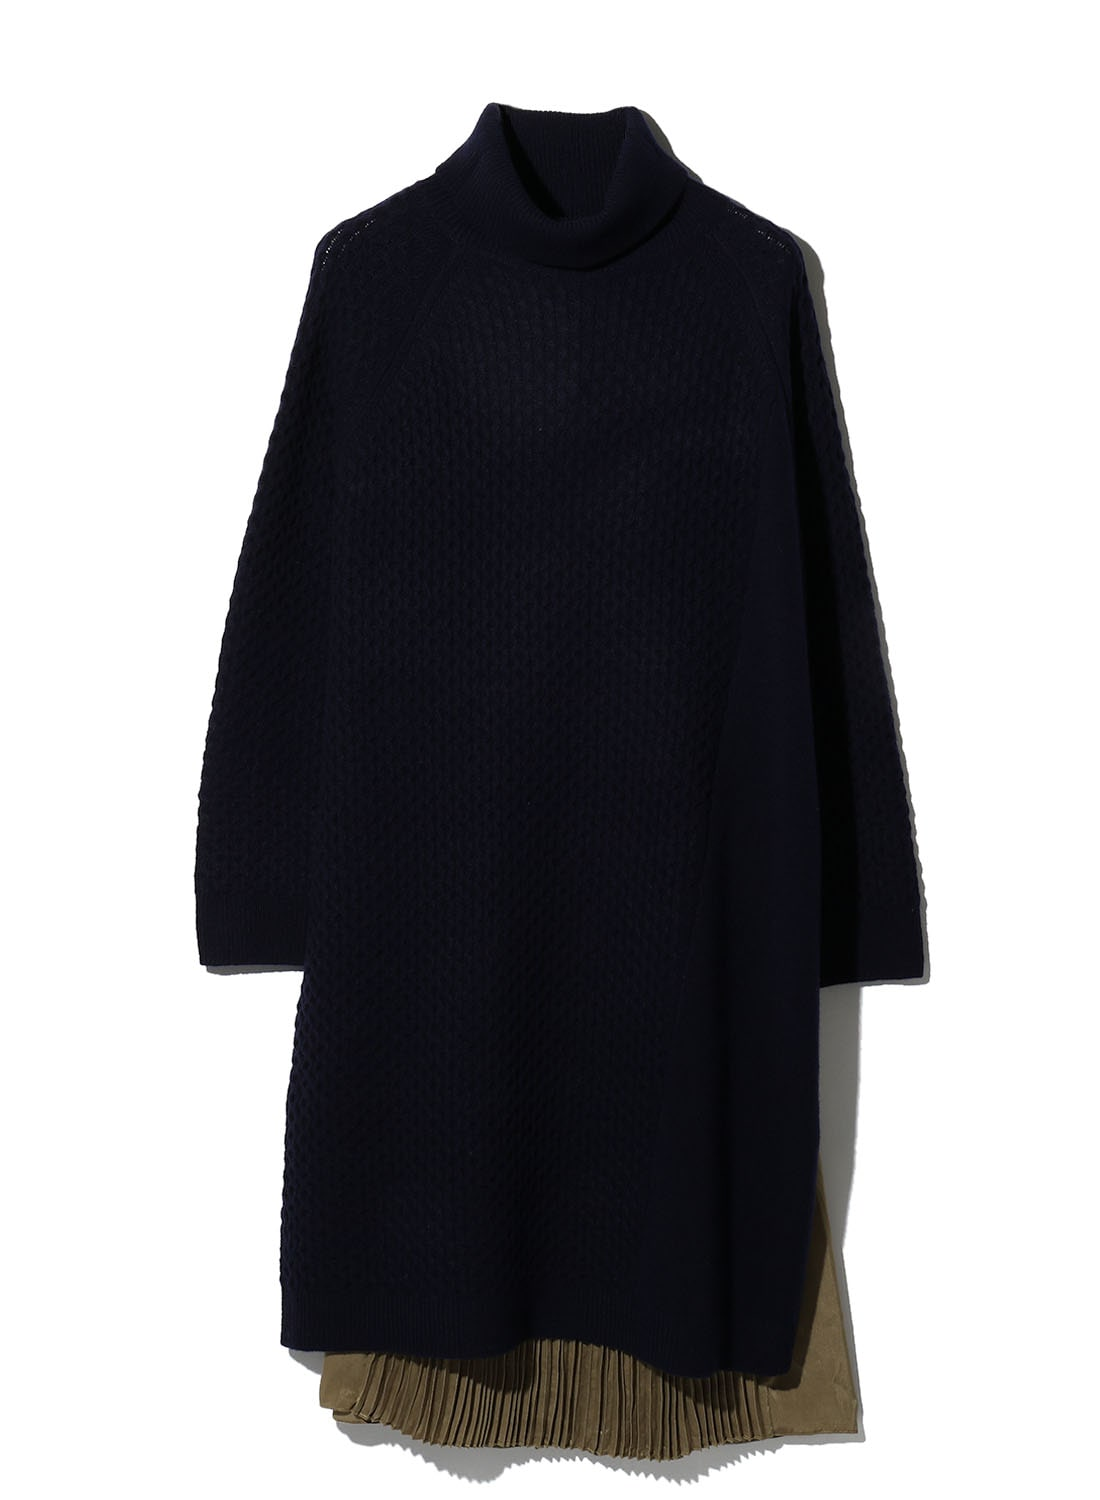 【日本限定】 KNIT COMBI ZIP DRESS